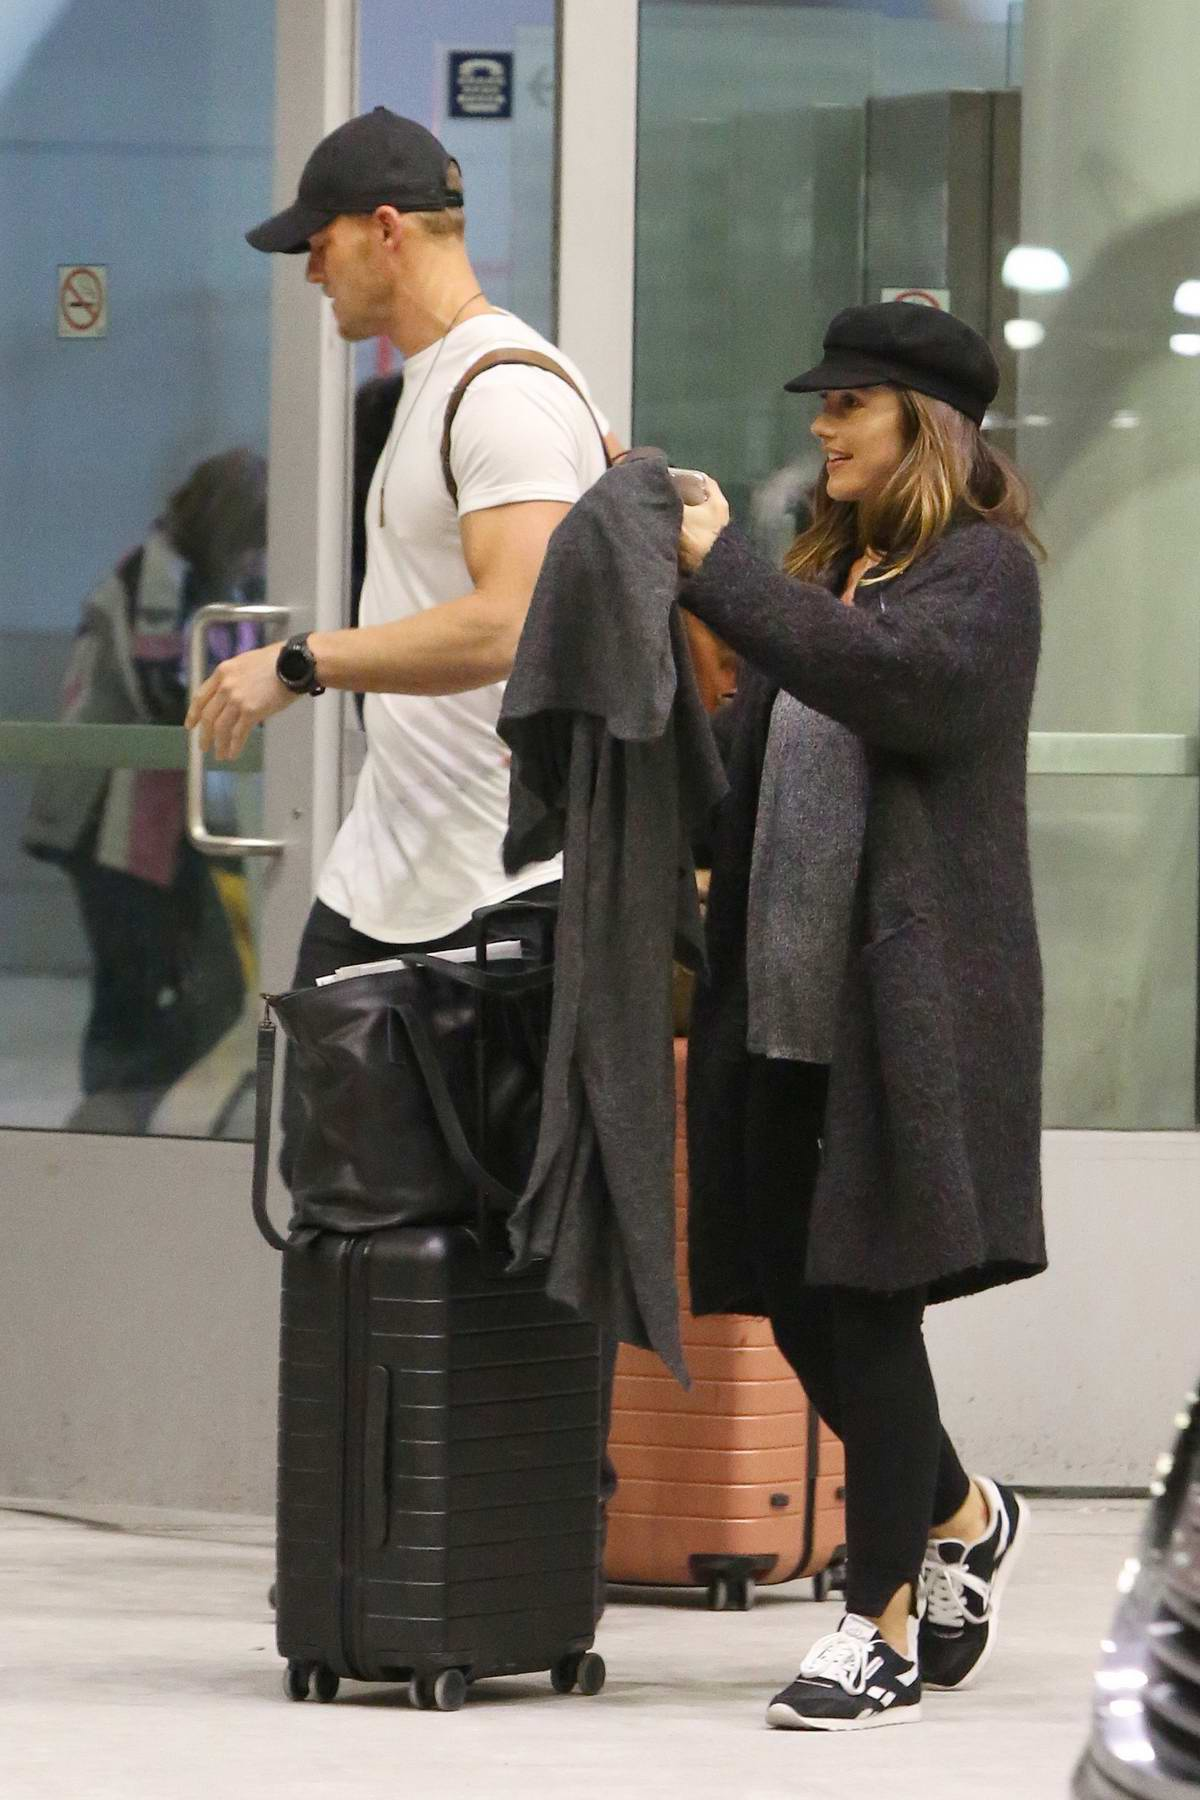 Minka Kelly and Alan Ritchson arrives to an airport in Toronto, Canada